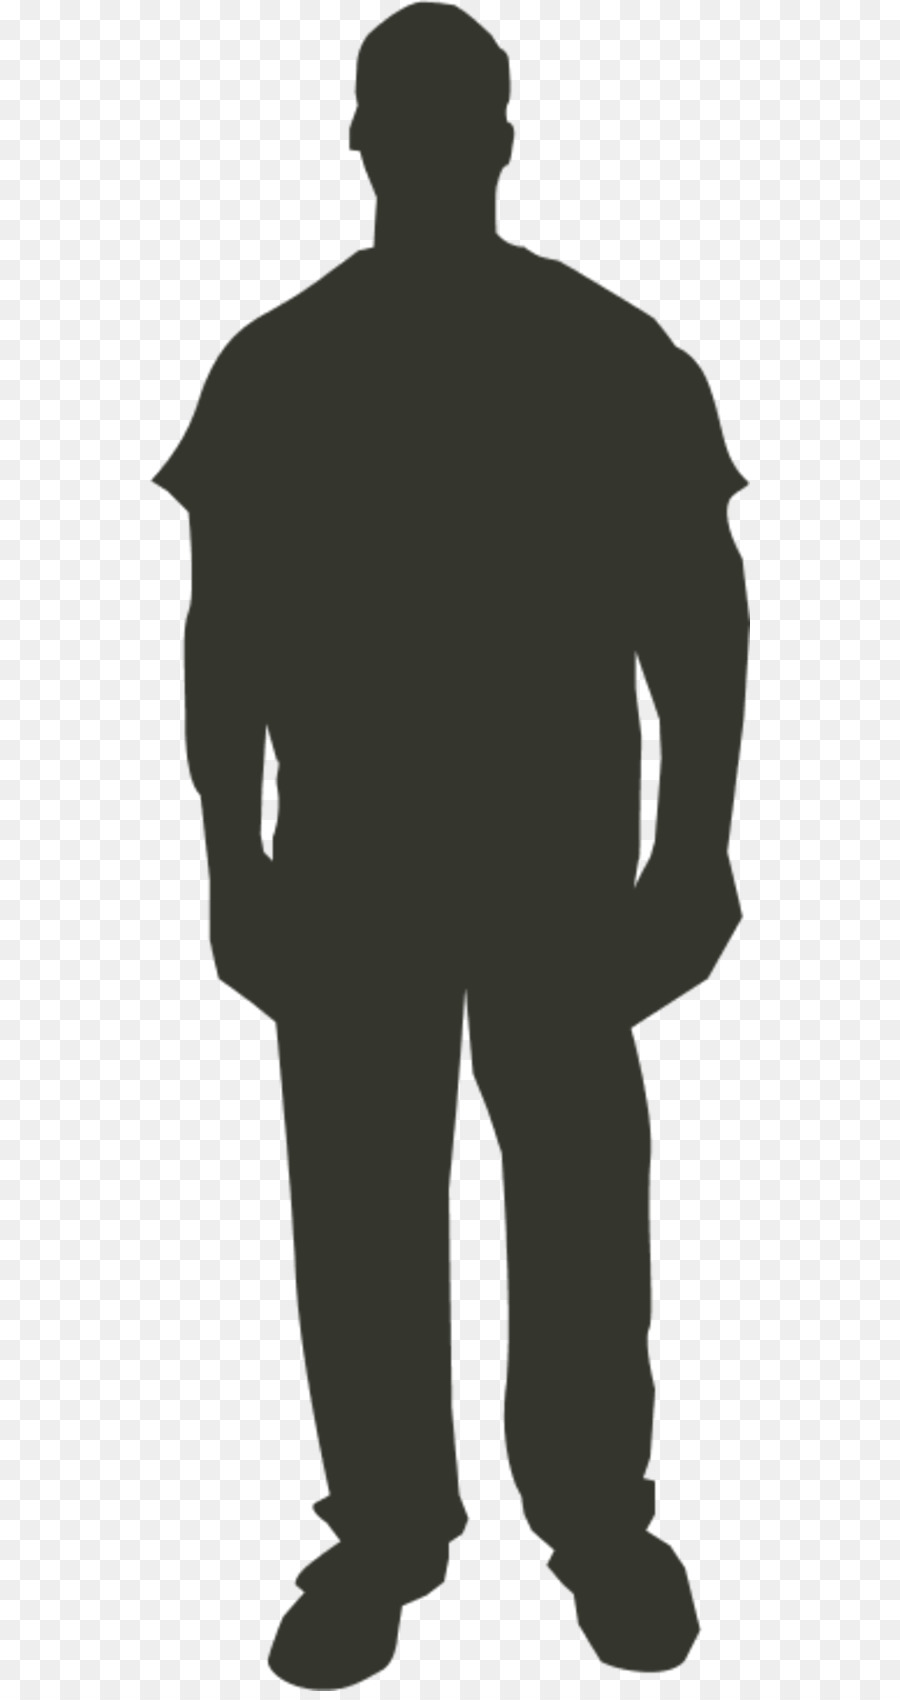 Person Outline Clip art - Man Standing Silhouette png ...